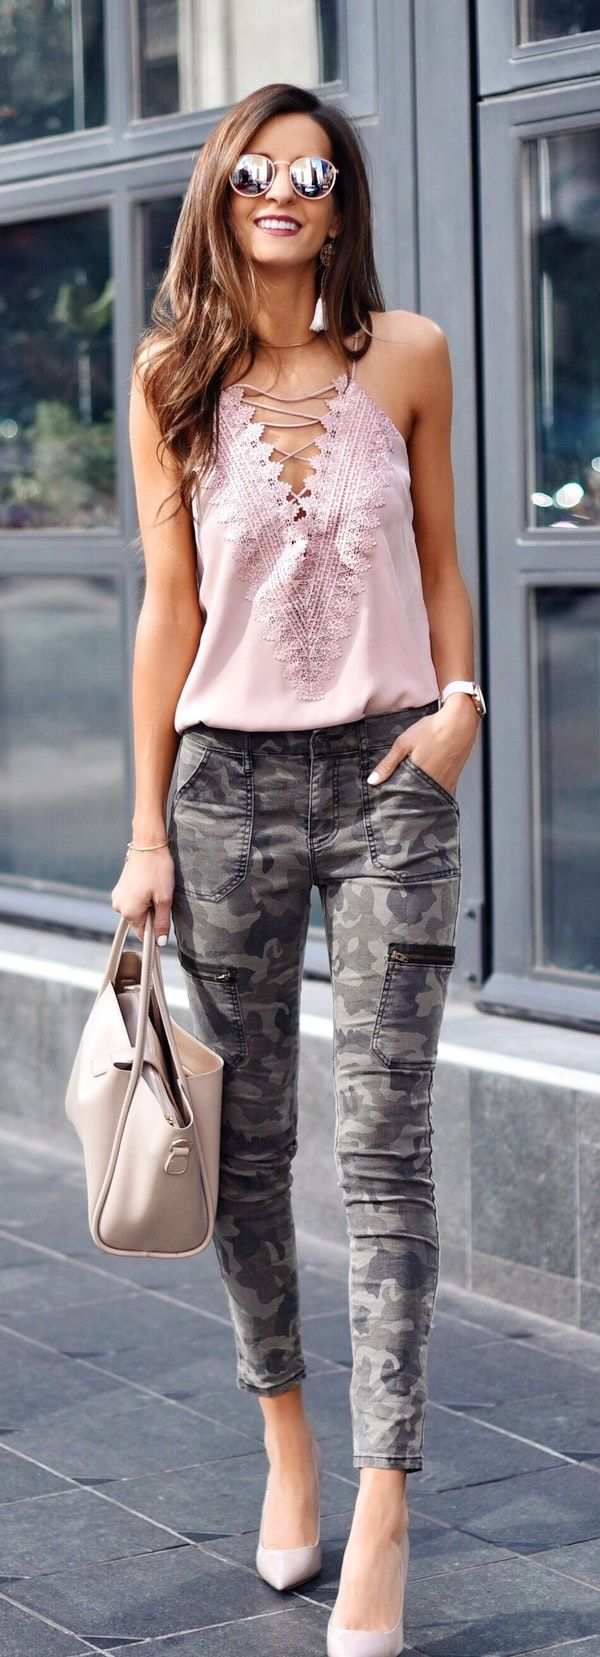 #spring #outfits woman in purple halter top, gray and black camouflage jeans, and pair of pink heeled shoes outfit. Pic by @myviewinheels